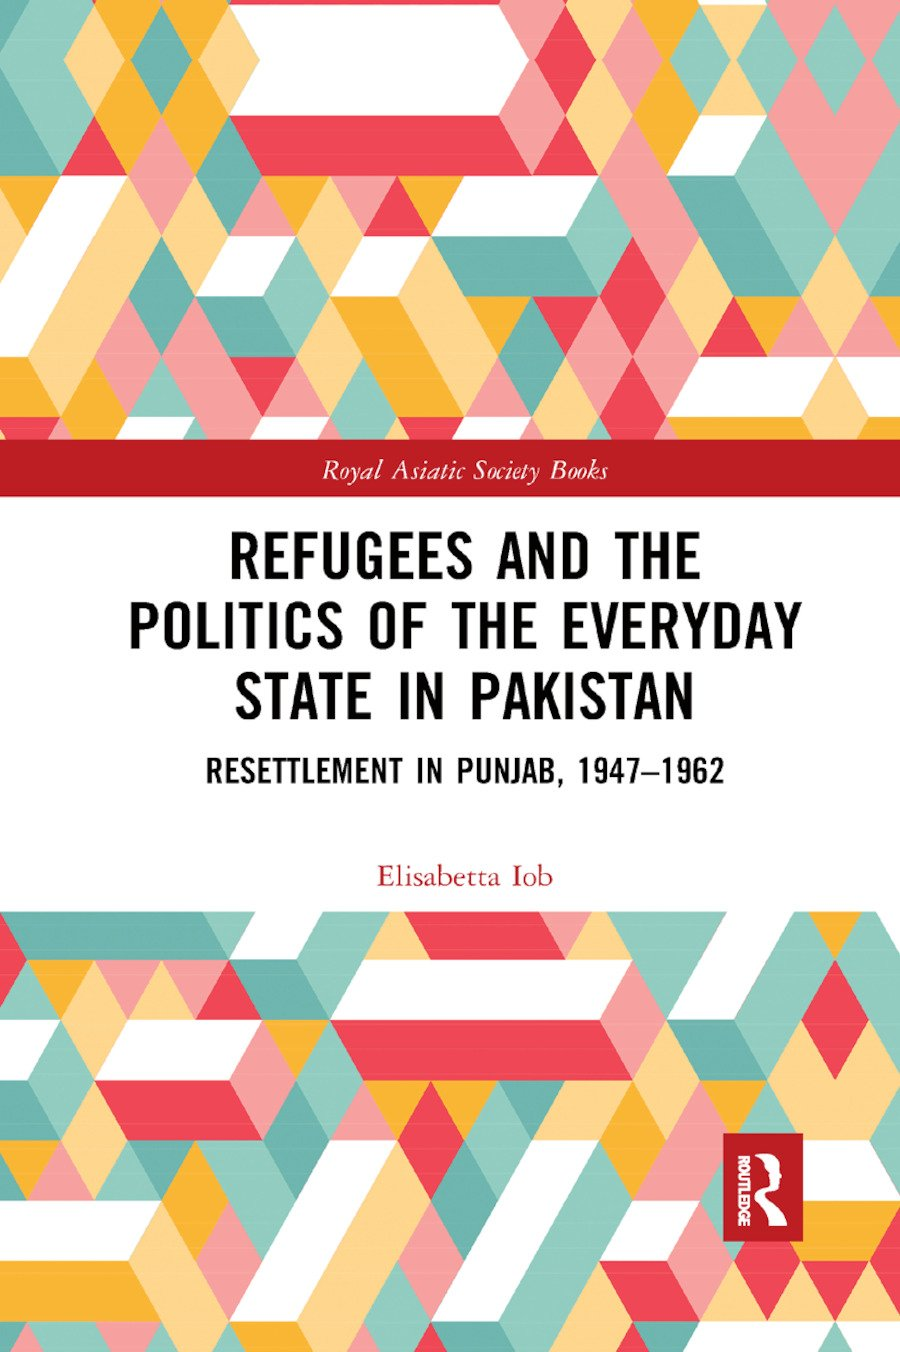 Refugees and the Politics of the Everyday State in Pakistan